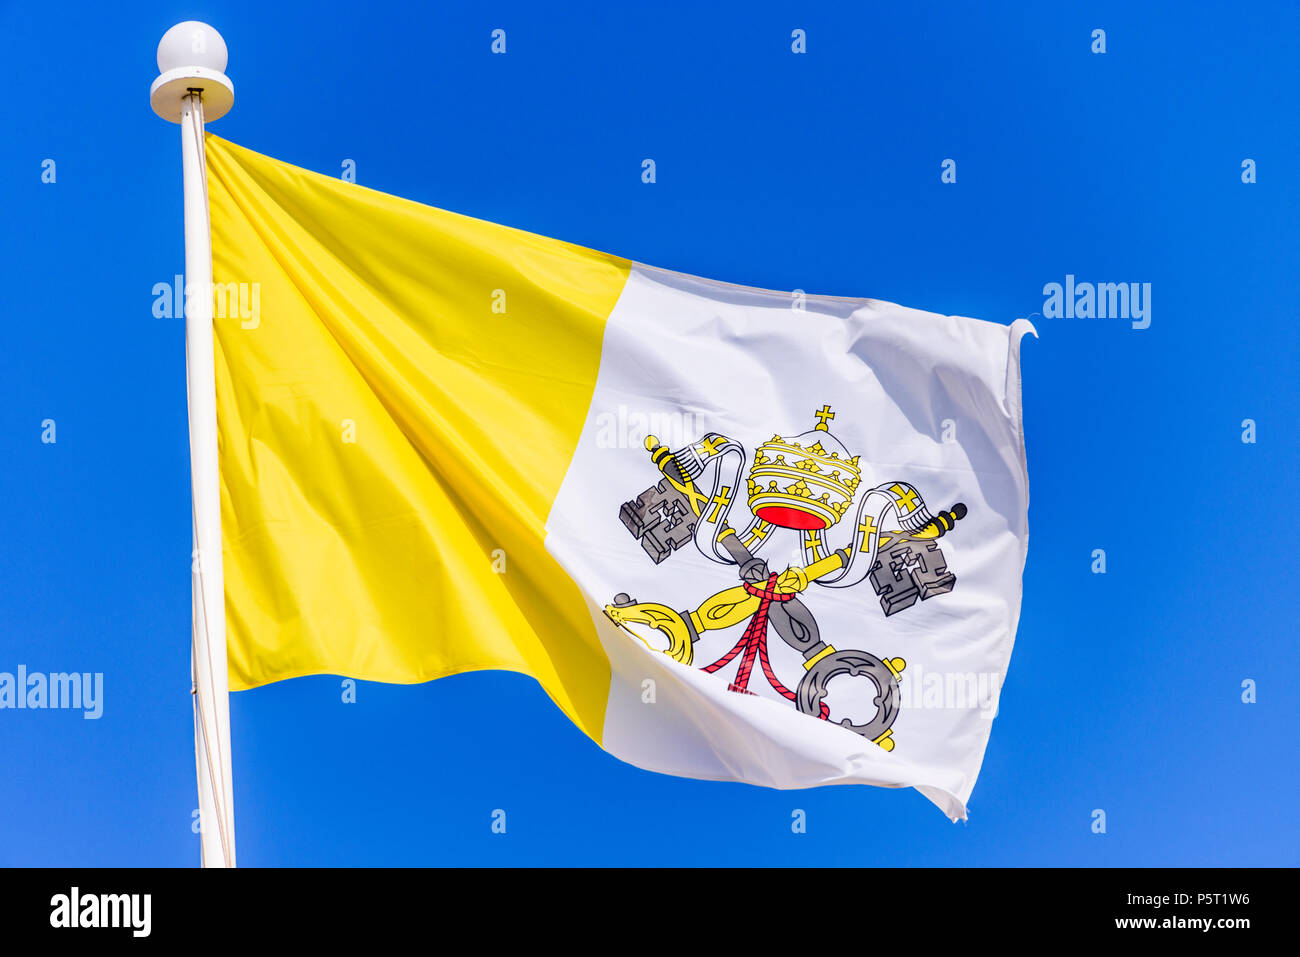 The flag of the Vatican City against a blue sky. - Stock Image